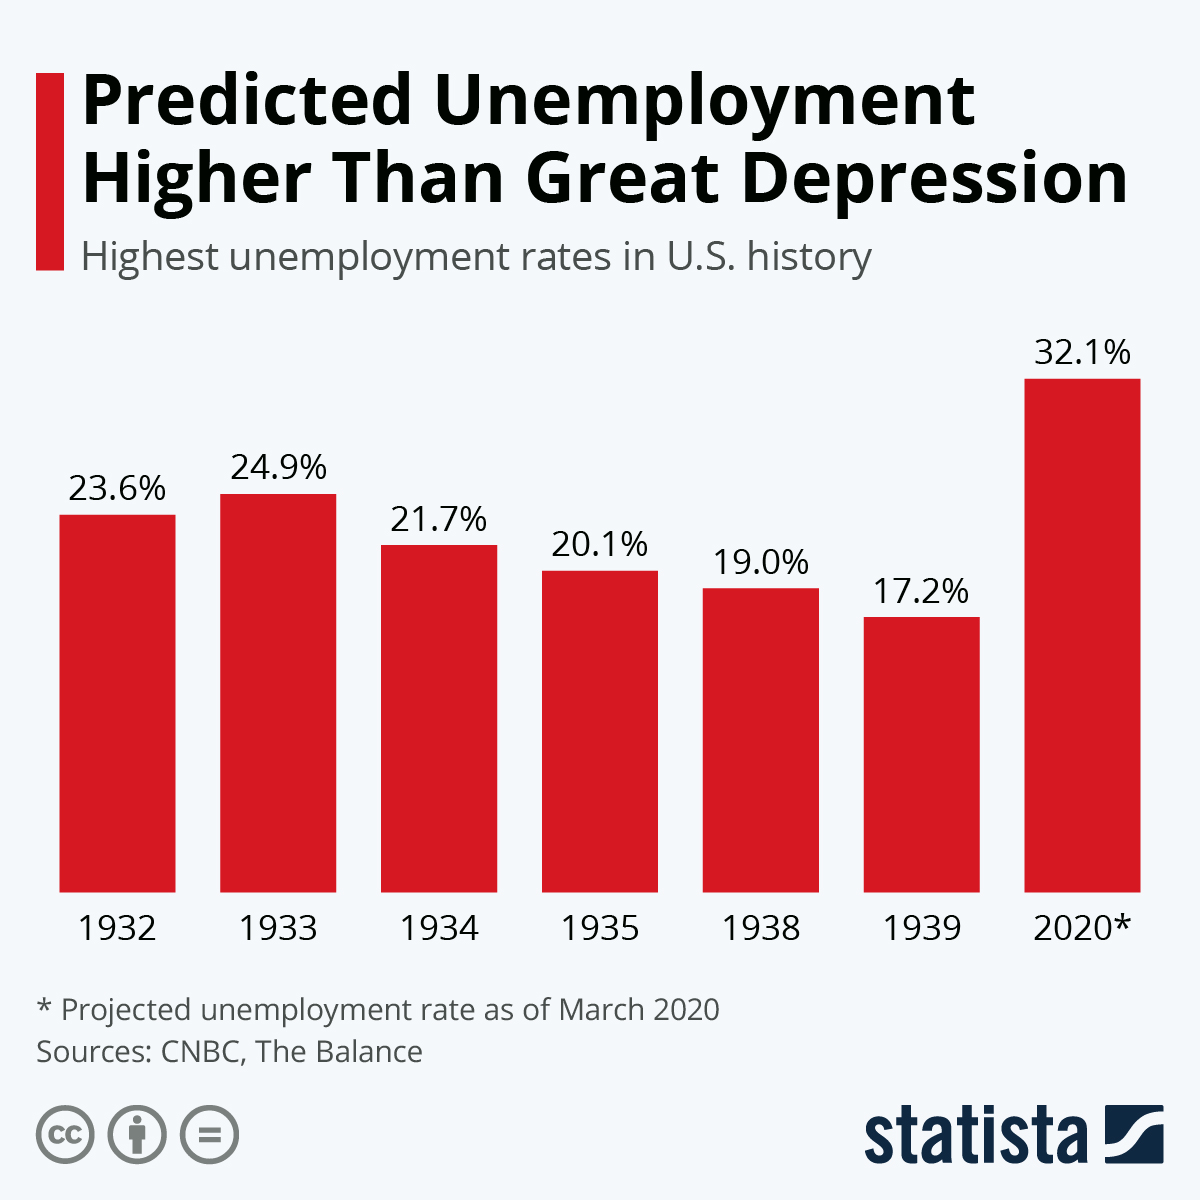 Chart Predicted Unemployment Higher Than Great Depression